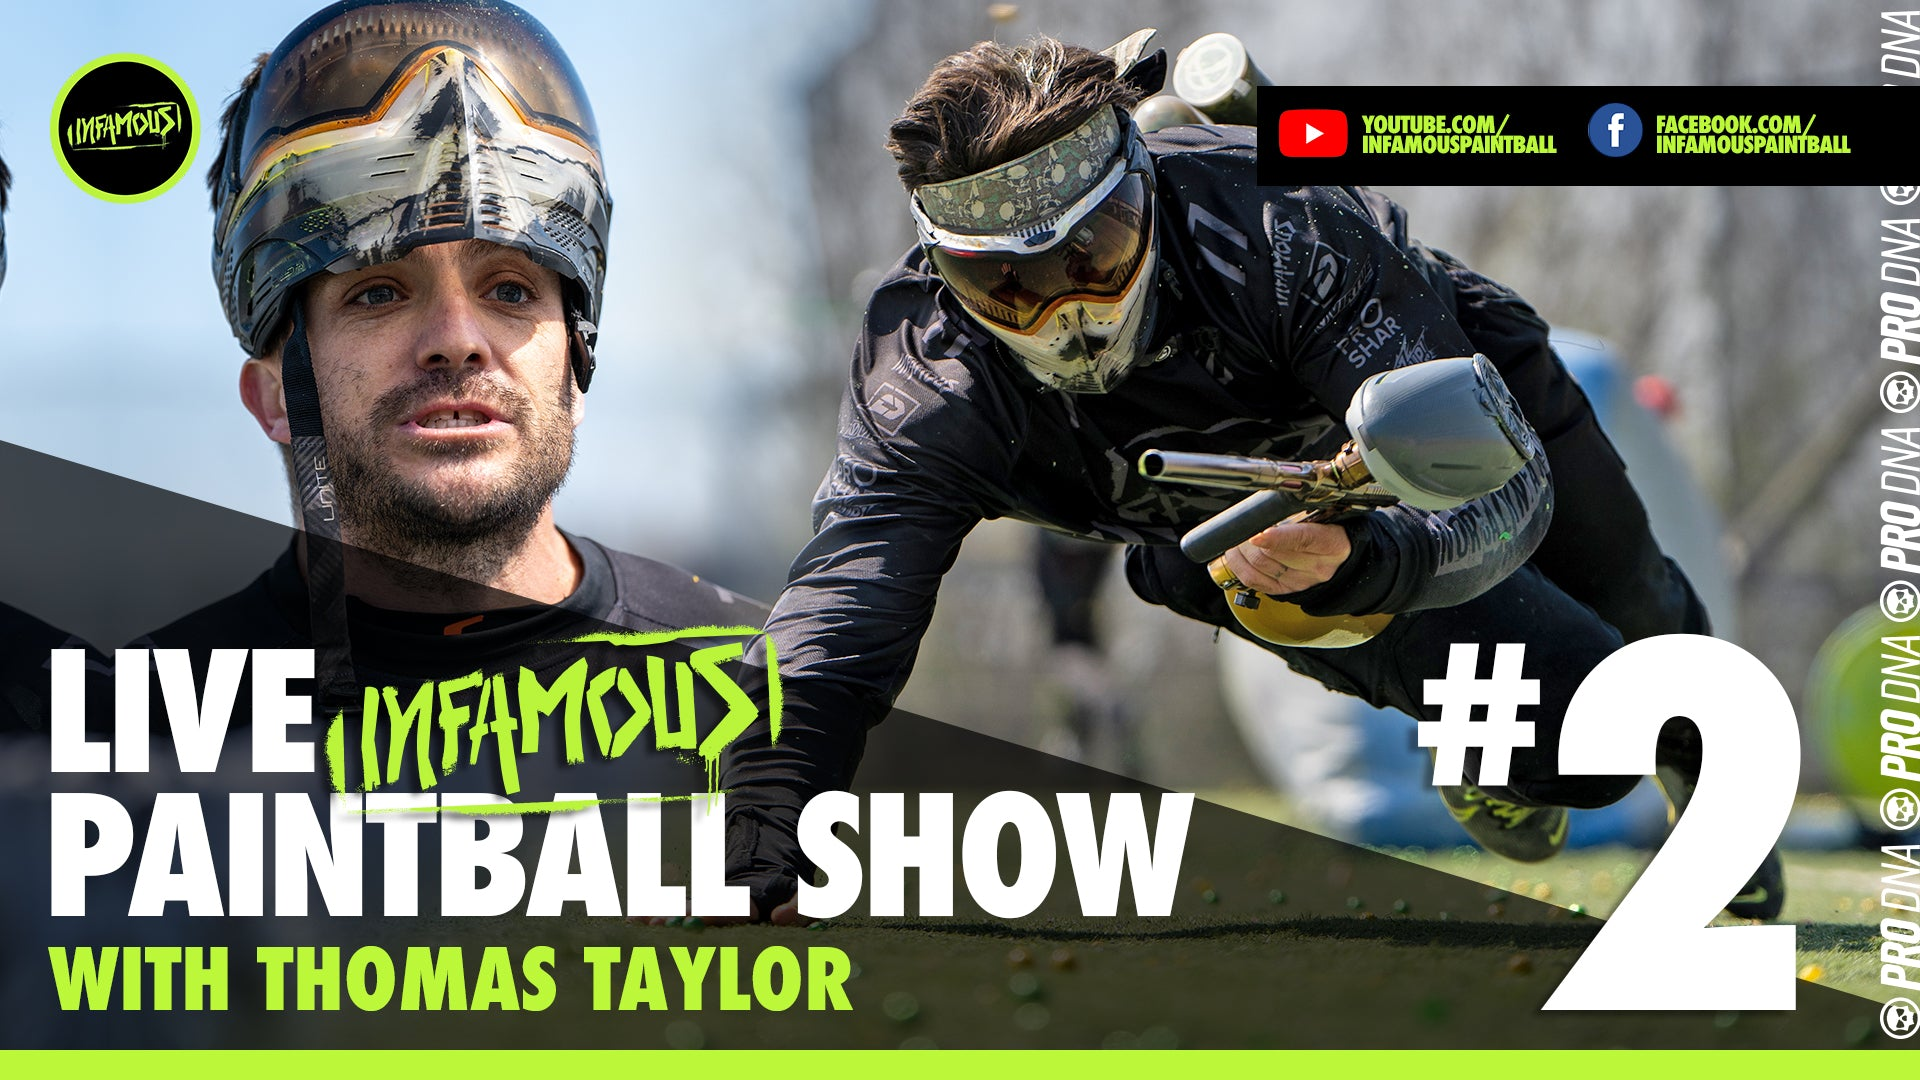 infamous live paintball show Thomas Taylor Kevin Rudulph drew Templeton Greg Siewers